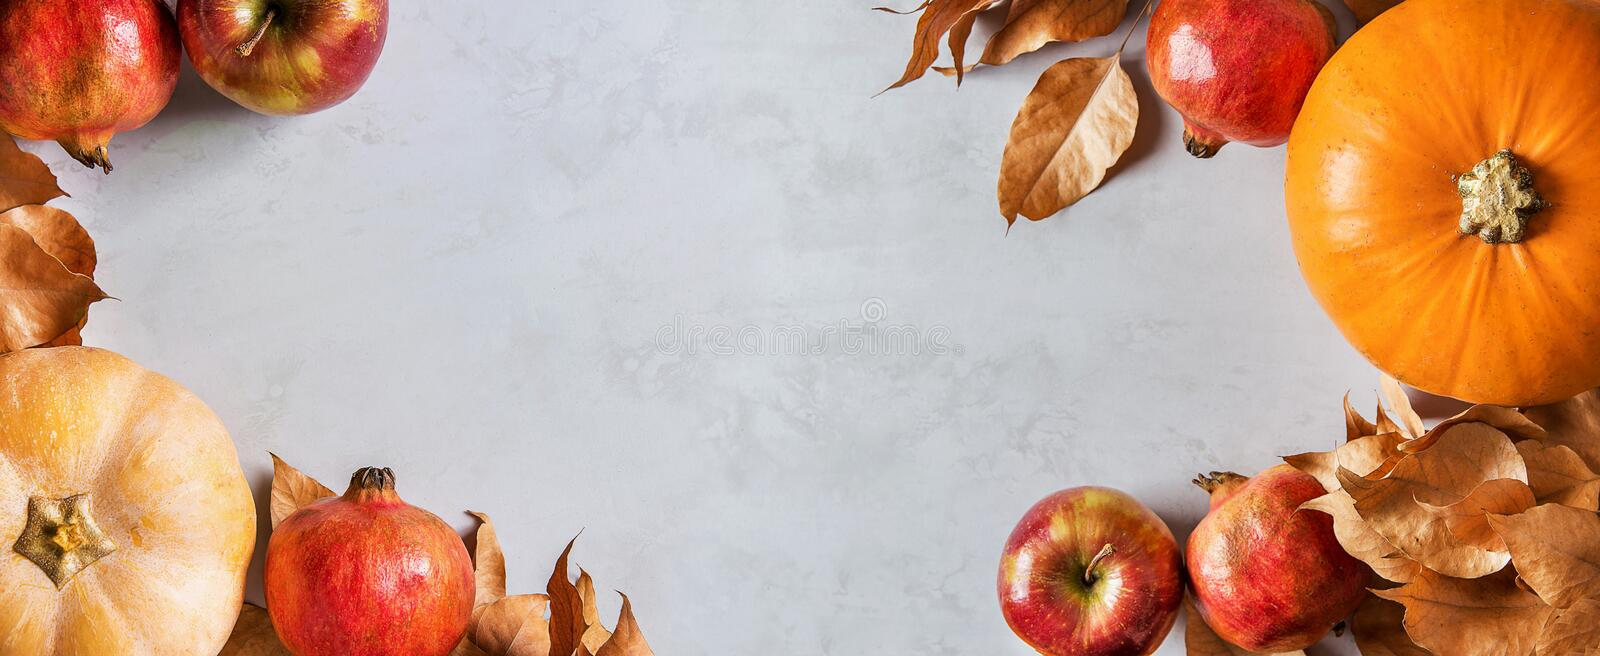 Orange and peachy pumpkins ripe organic red glossy apples pomegranates chestnuts dry golden autumn leaves on gray marble stock images